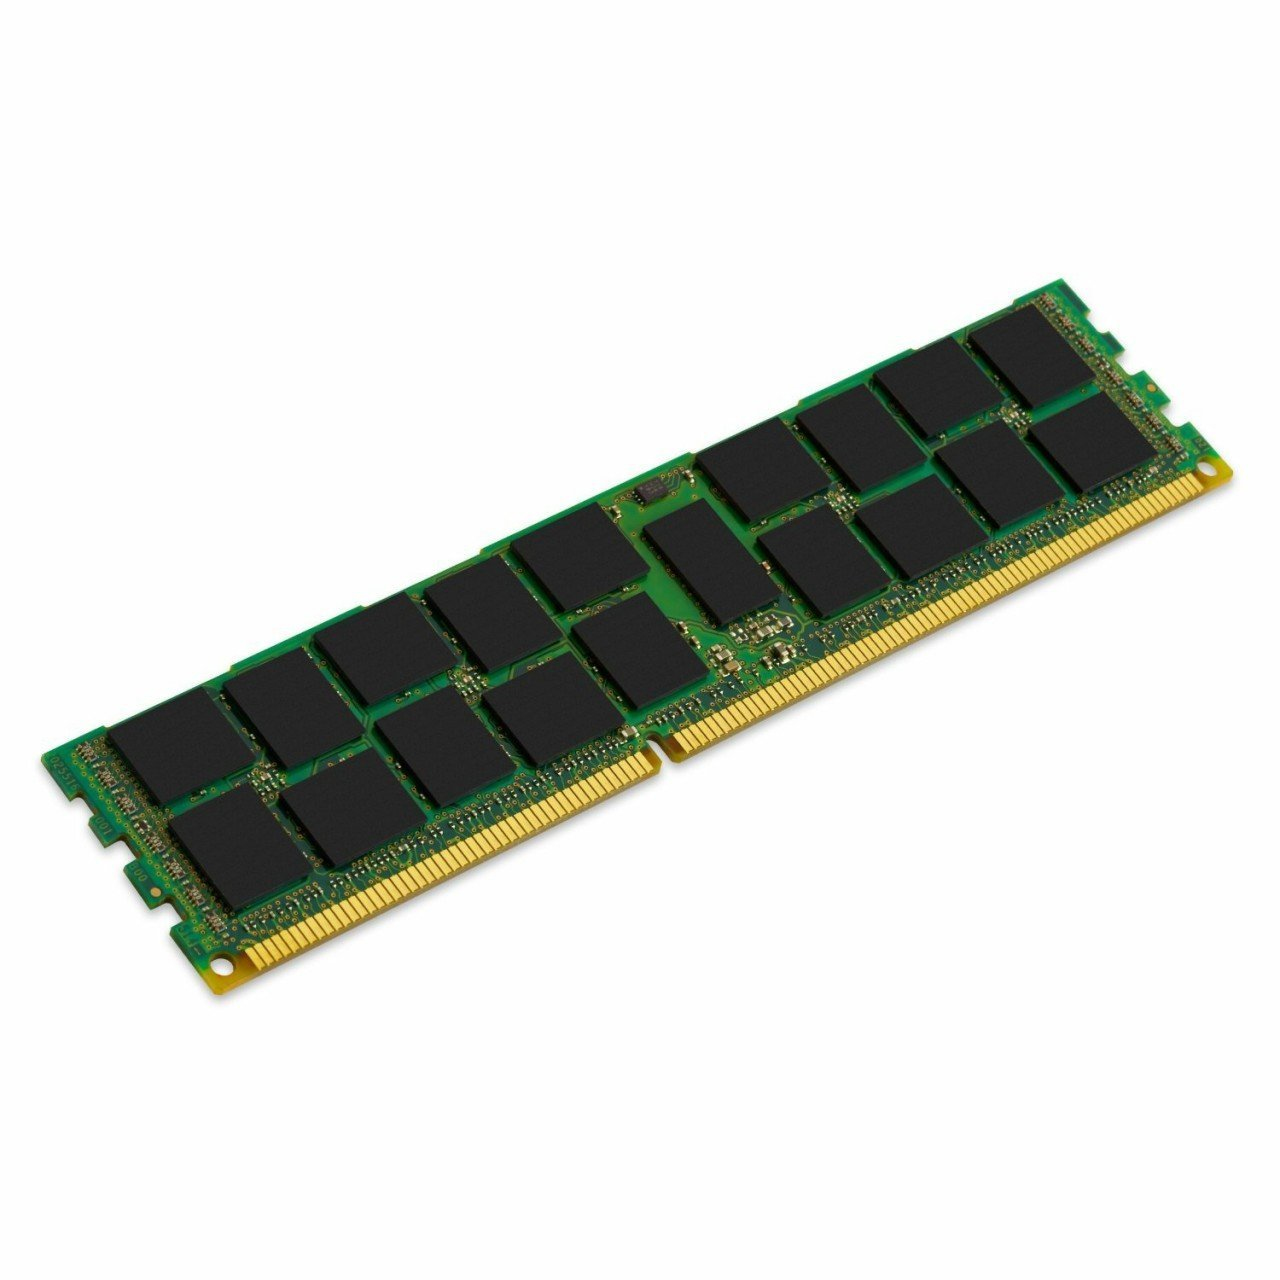 Kingston Technology ValueRAM 4GB DDR3L 1600MHz 4GB DDR3L 1600MHz ECC memory module